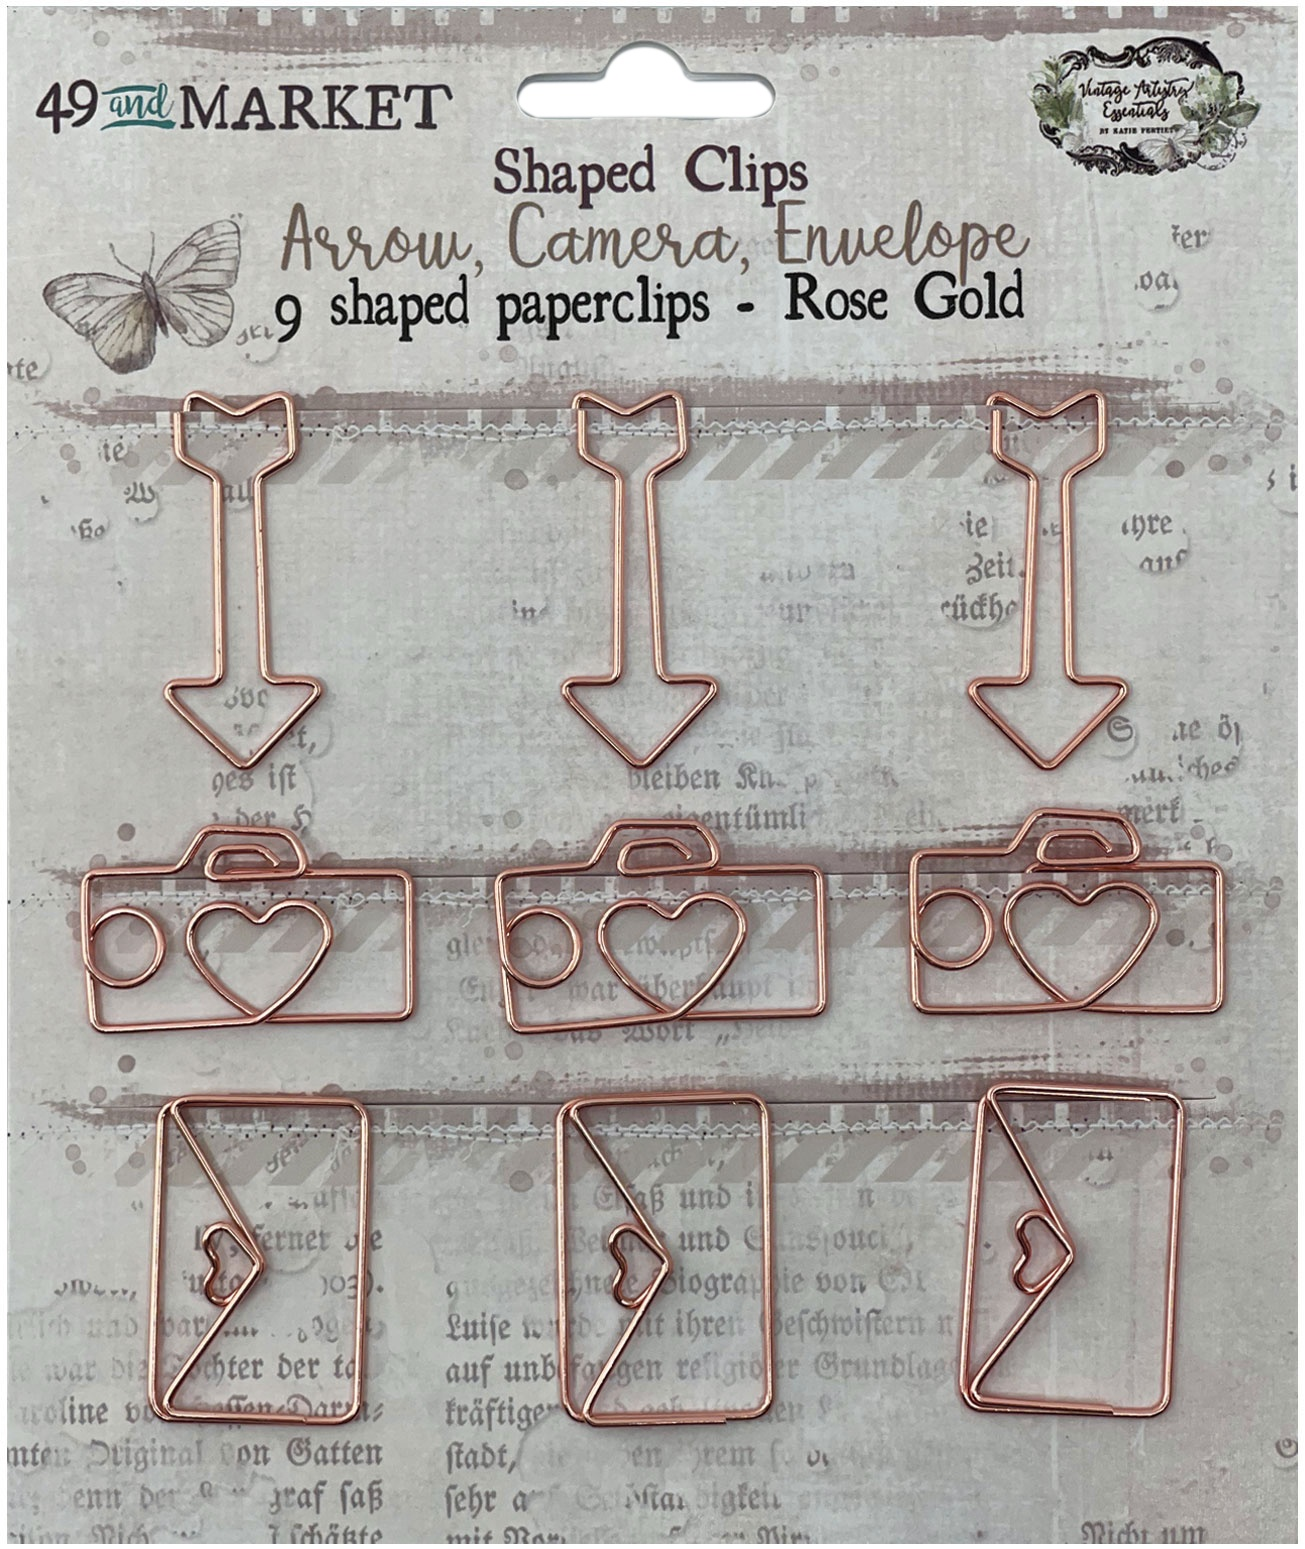 49 And Market Foundations Paper Clips 9/Pkg-Arrow, Camera, Envelope In Rose Gold